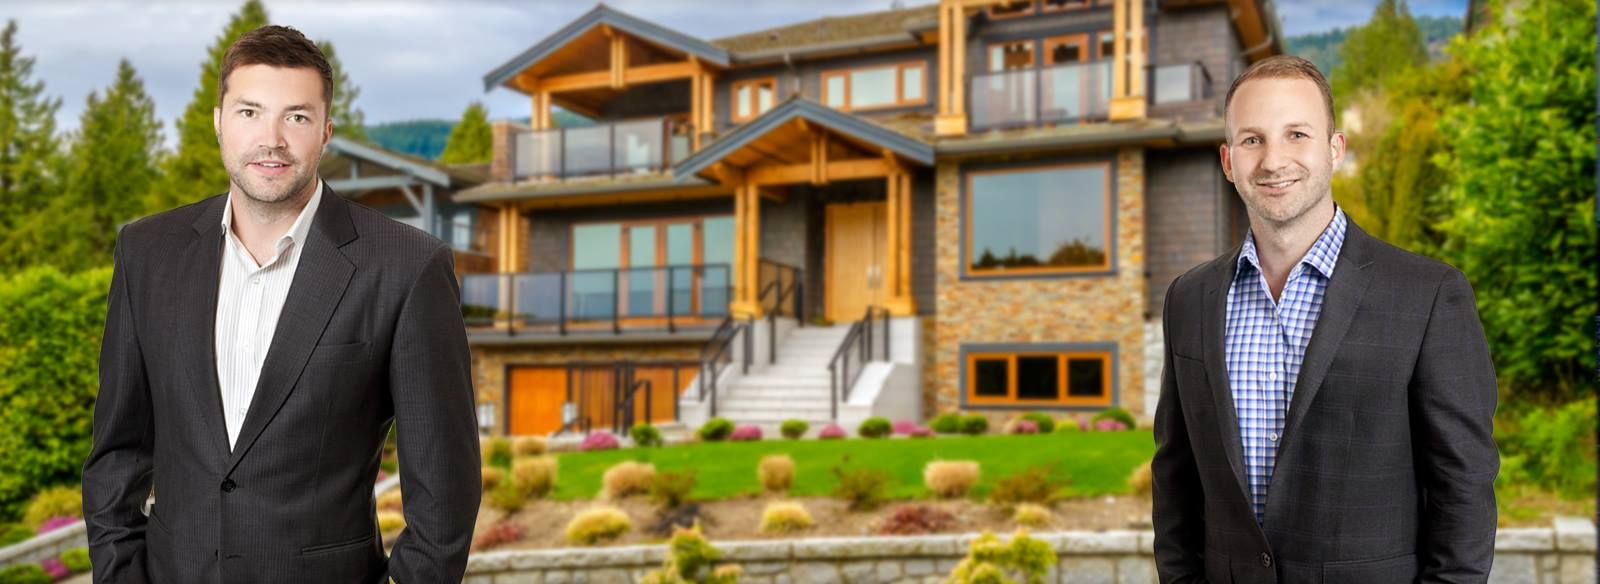 Scott Wallace & Carson Green - Vancouver Real Estate Experts